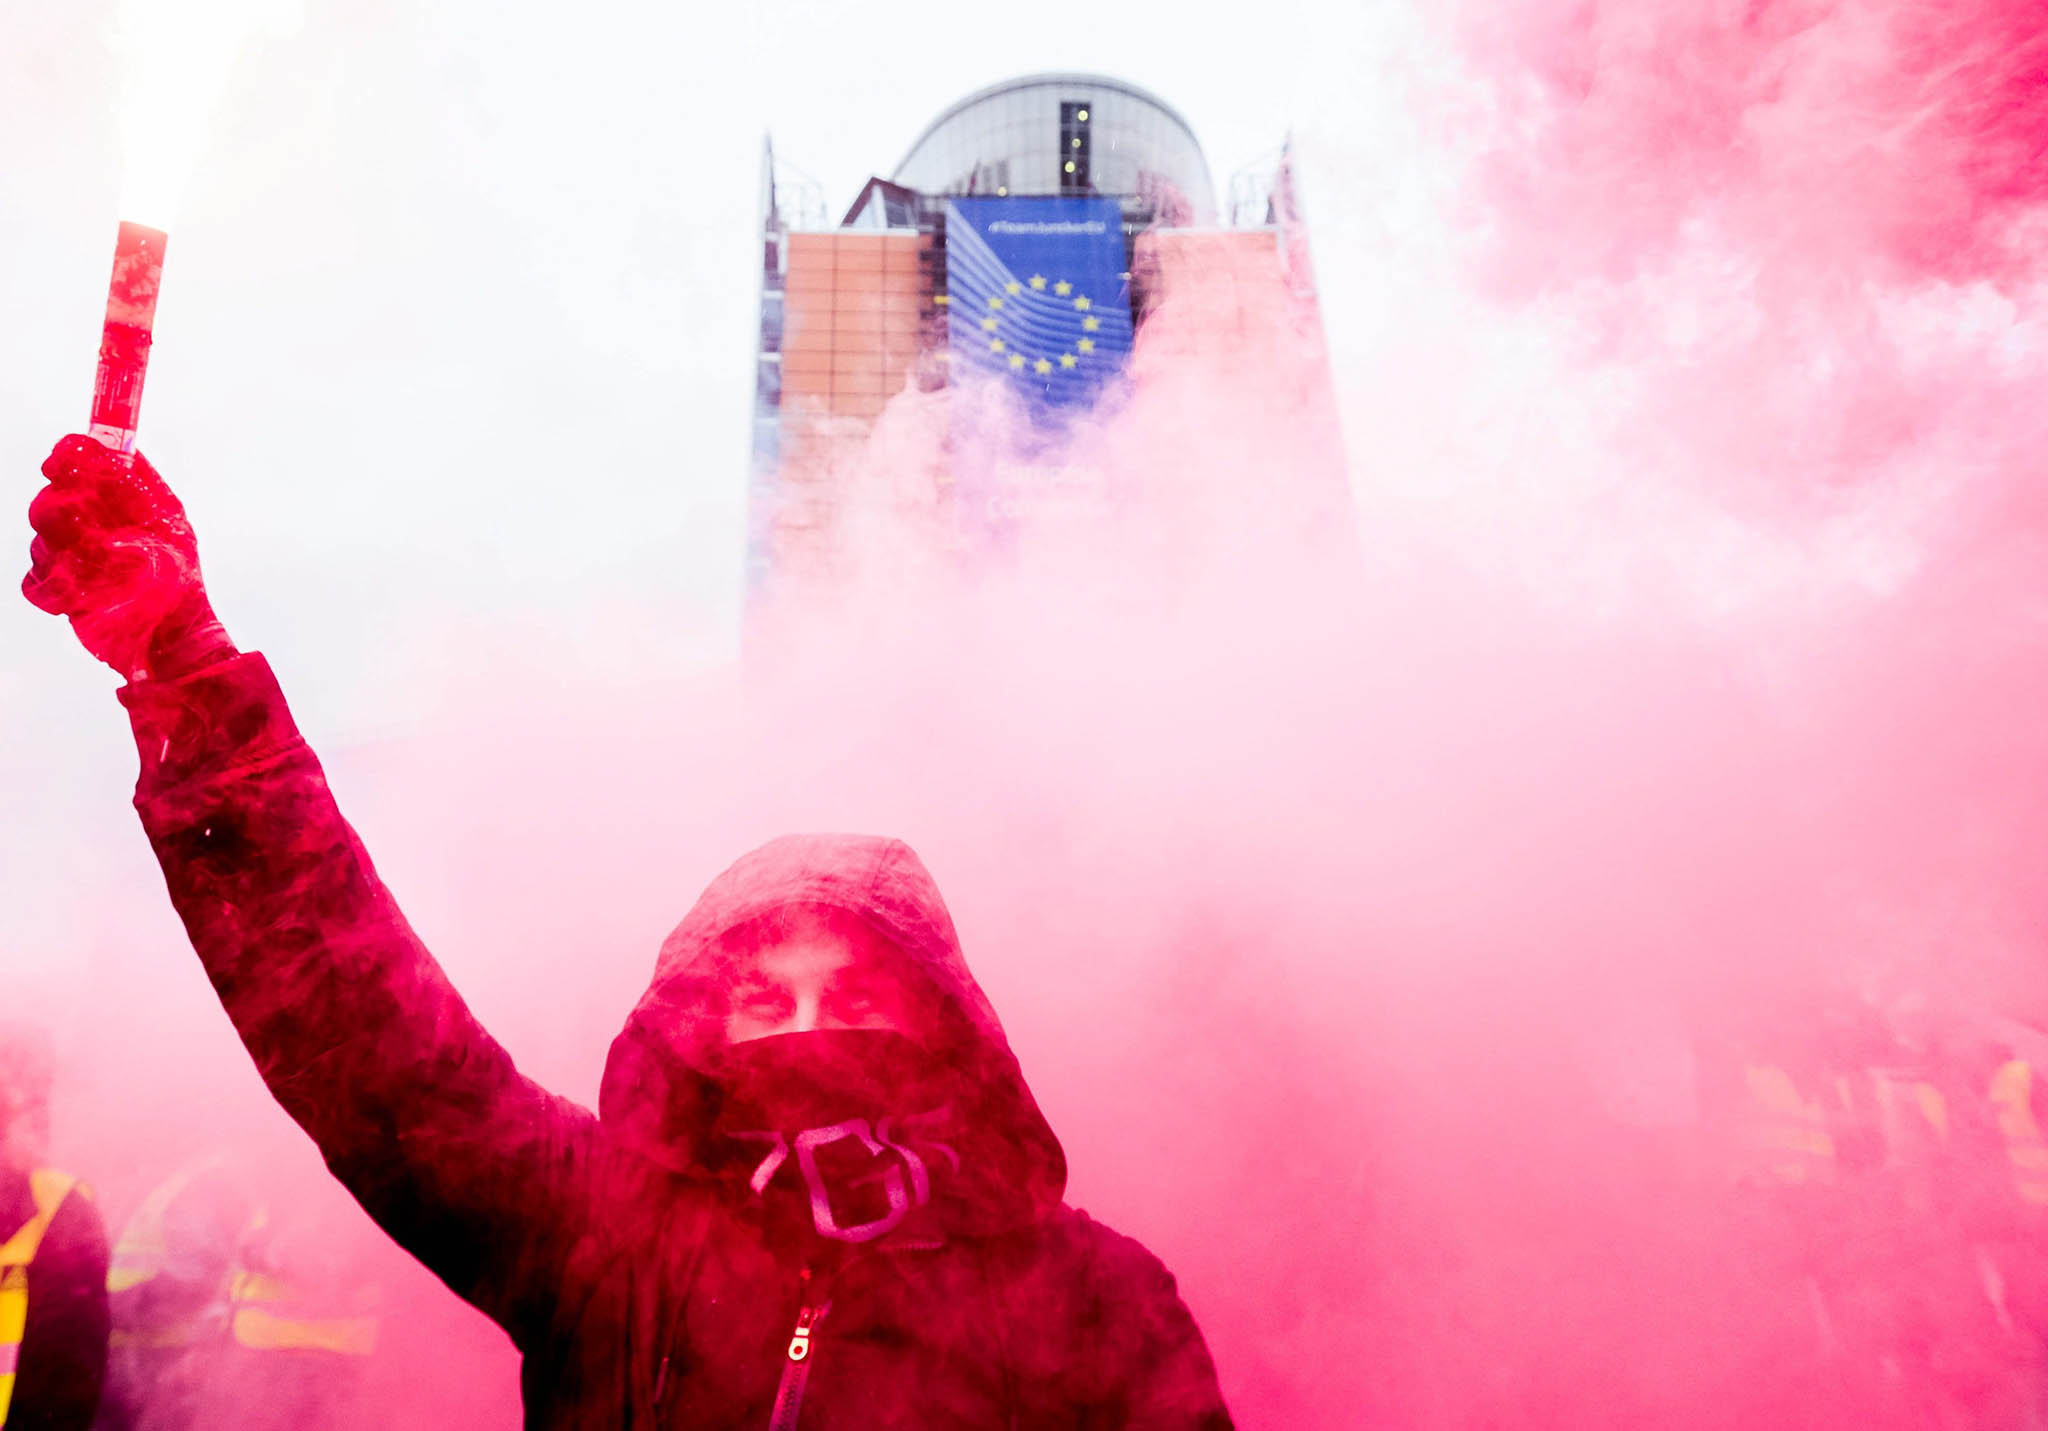 A protester lights a flare as he takes part in an european steel workers protest against China's dumping price in Brussels, Belgium, 09 November 2016. The demonstration of European Steel Association (EUROFER) and workers of steel industry has been organized following a severe downturn in the price of steel caused by a flood of imports into Europe from China.  EPA/STEPHANIE LECOCQ